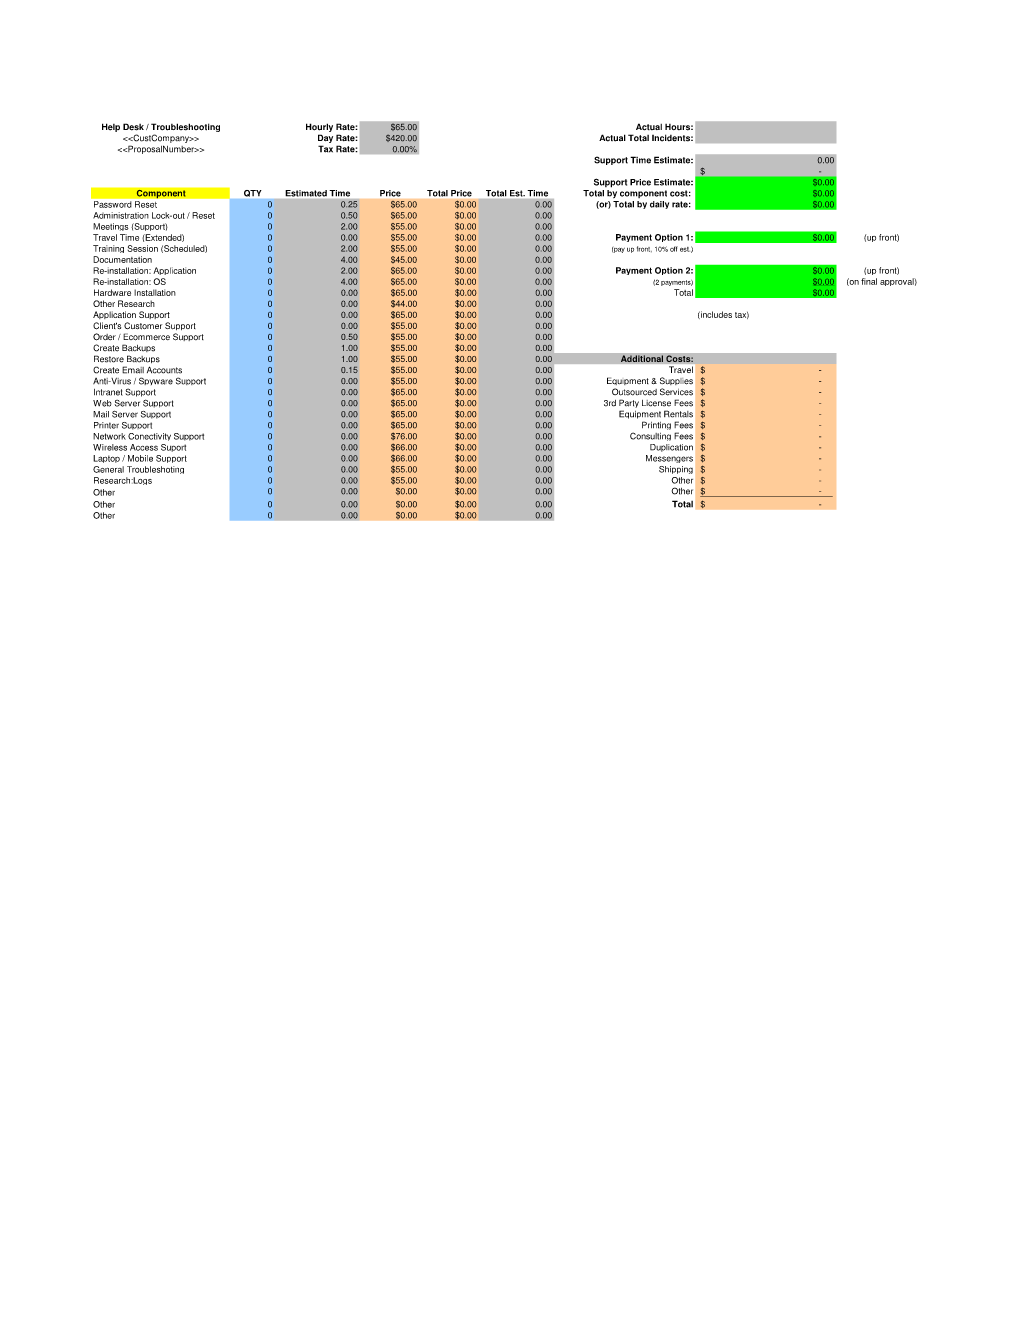 Help Desk Support Estimate Spreadsheet